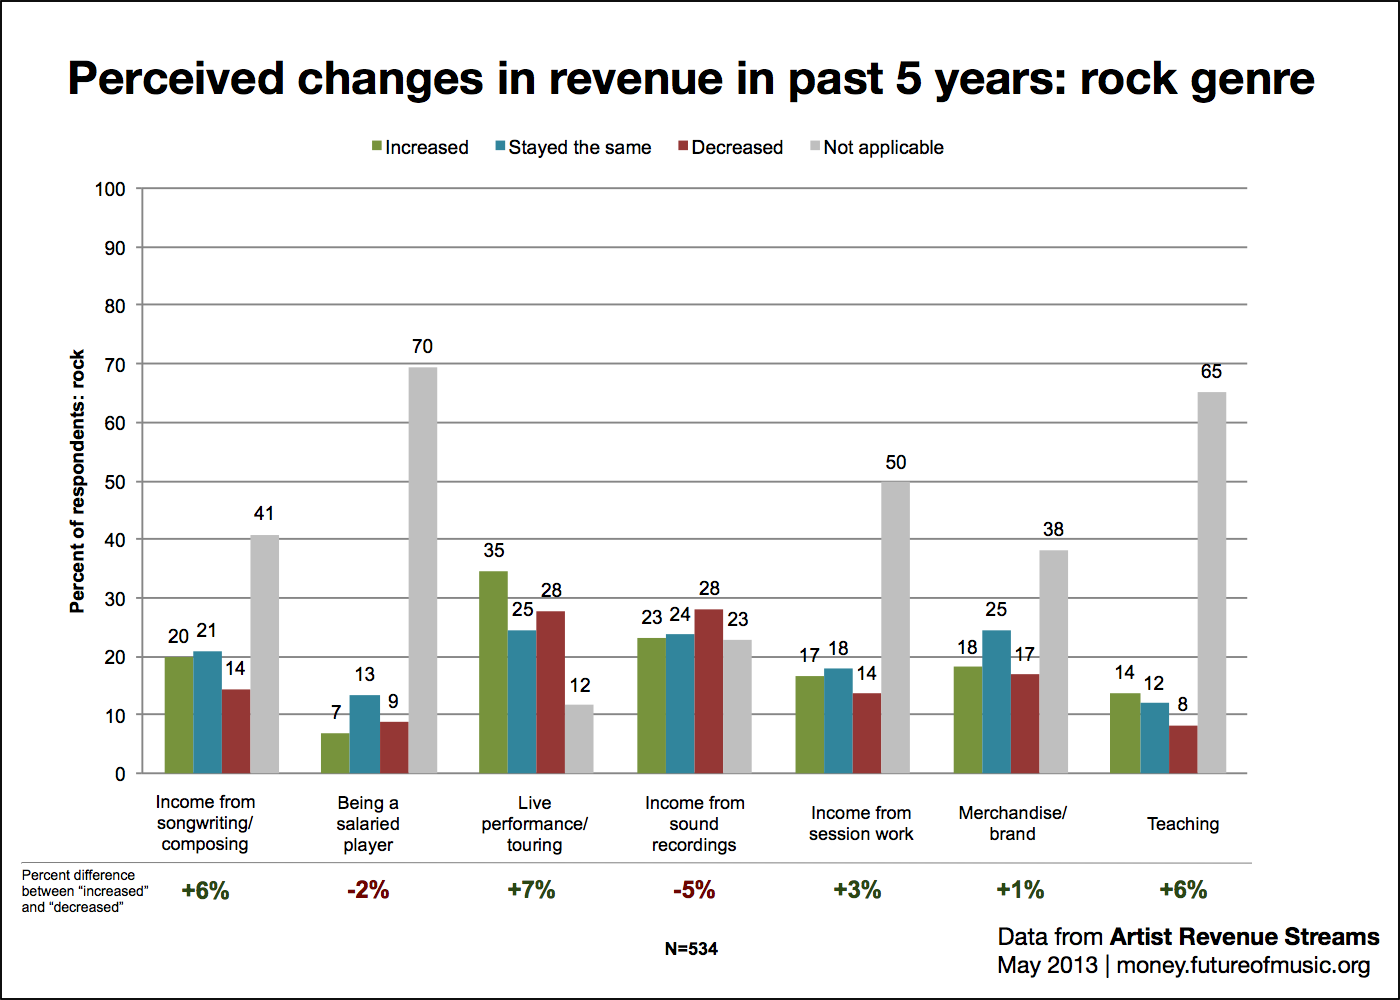 Perceived changes in revenue: rock